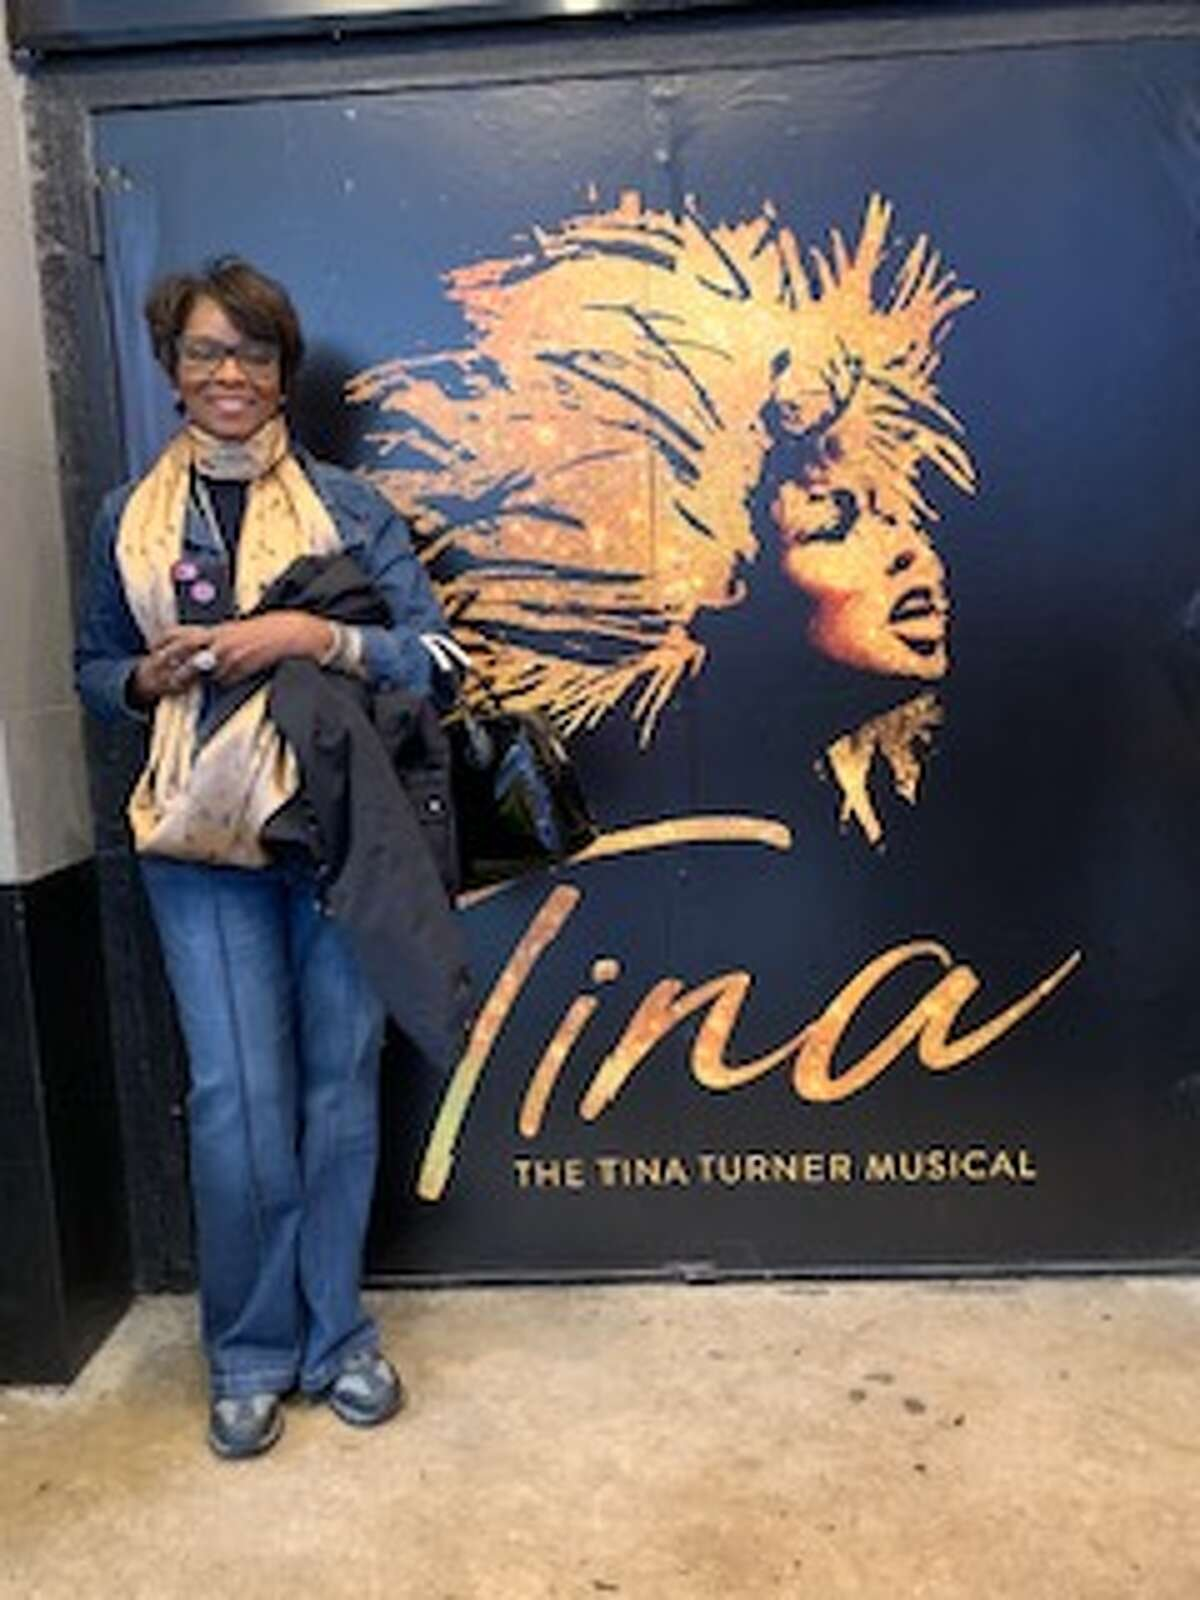 1. I'm a huge fan of Tina Turner. I admire her not only because of her talent, but because of her resilience and ability to reinvent herself. Demanding she keep her name following her divorce from Ike Turner was one example. This photo is of me outside a New York City theater after attending her play, which was more like a concert. It was so great!